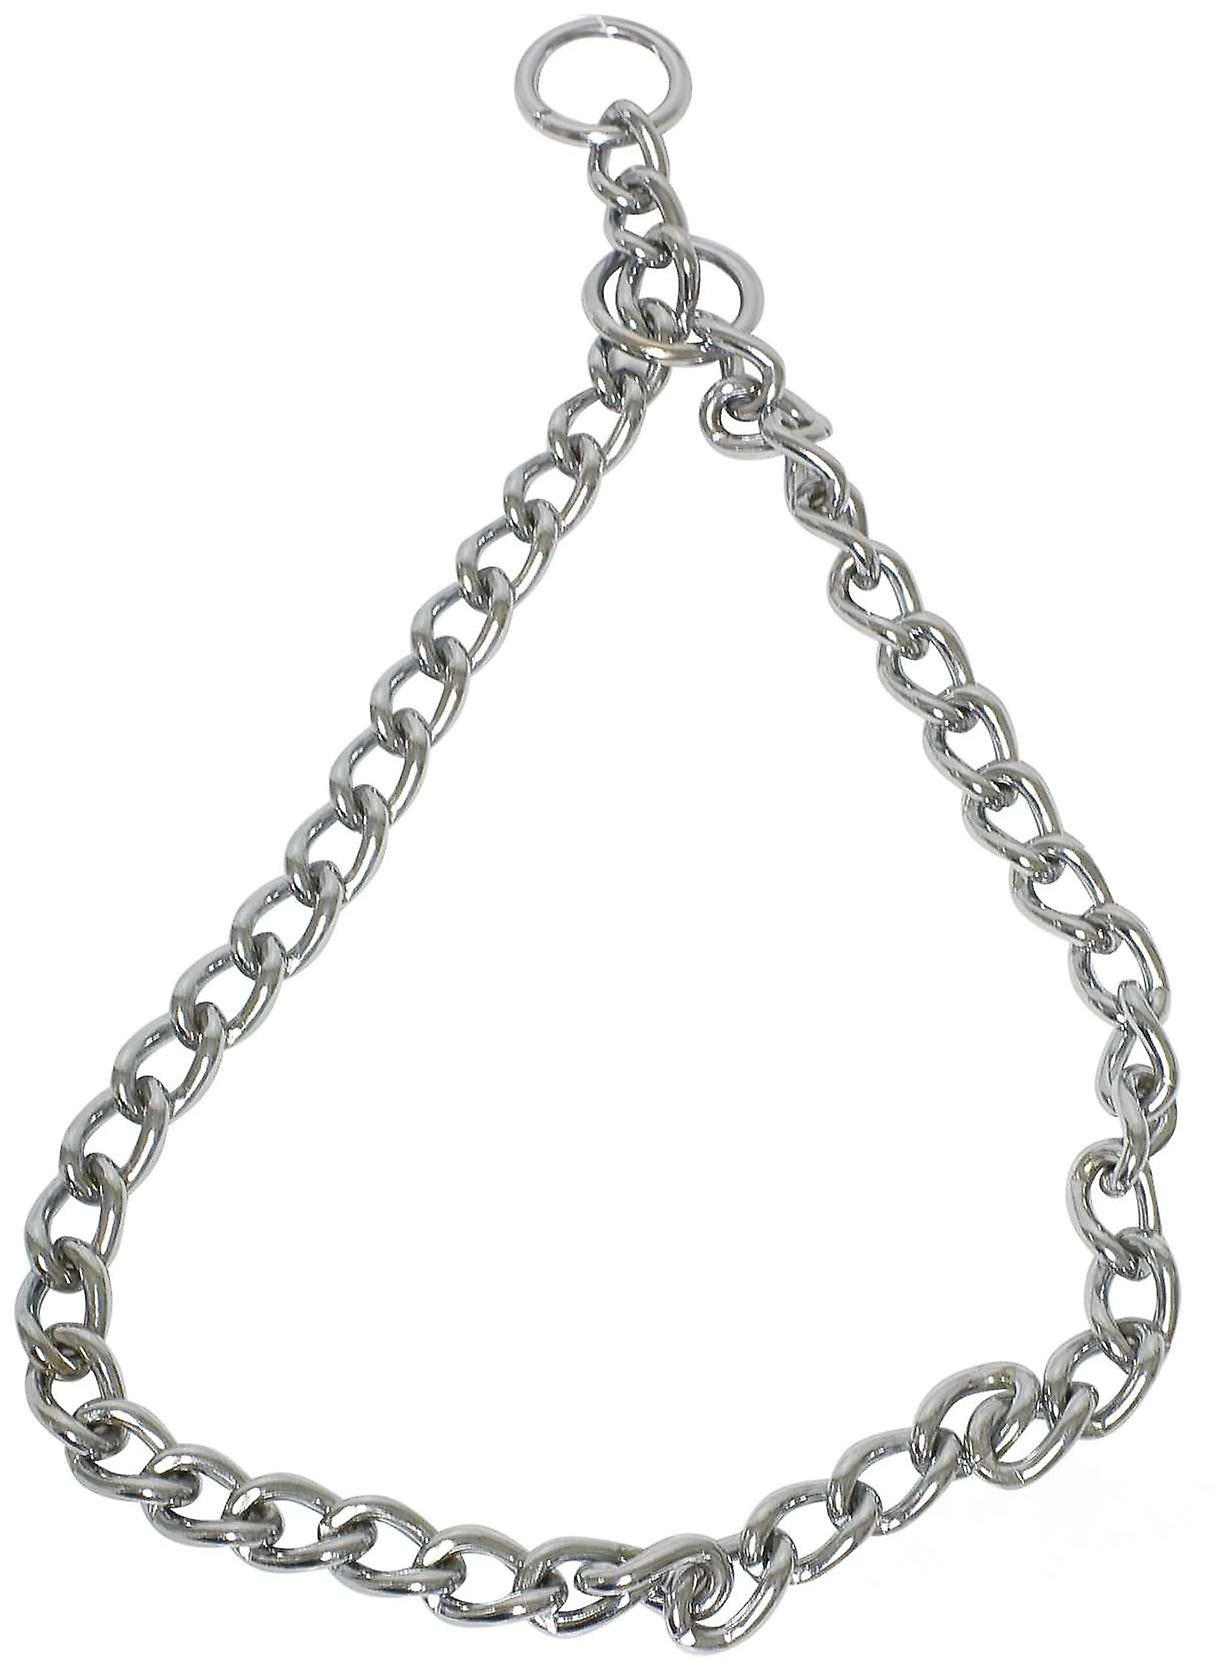 Ica Doberman Necklace Dogs Collars Leads And Harnesses